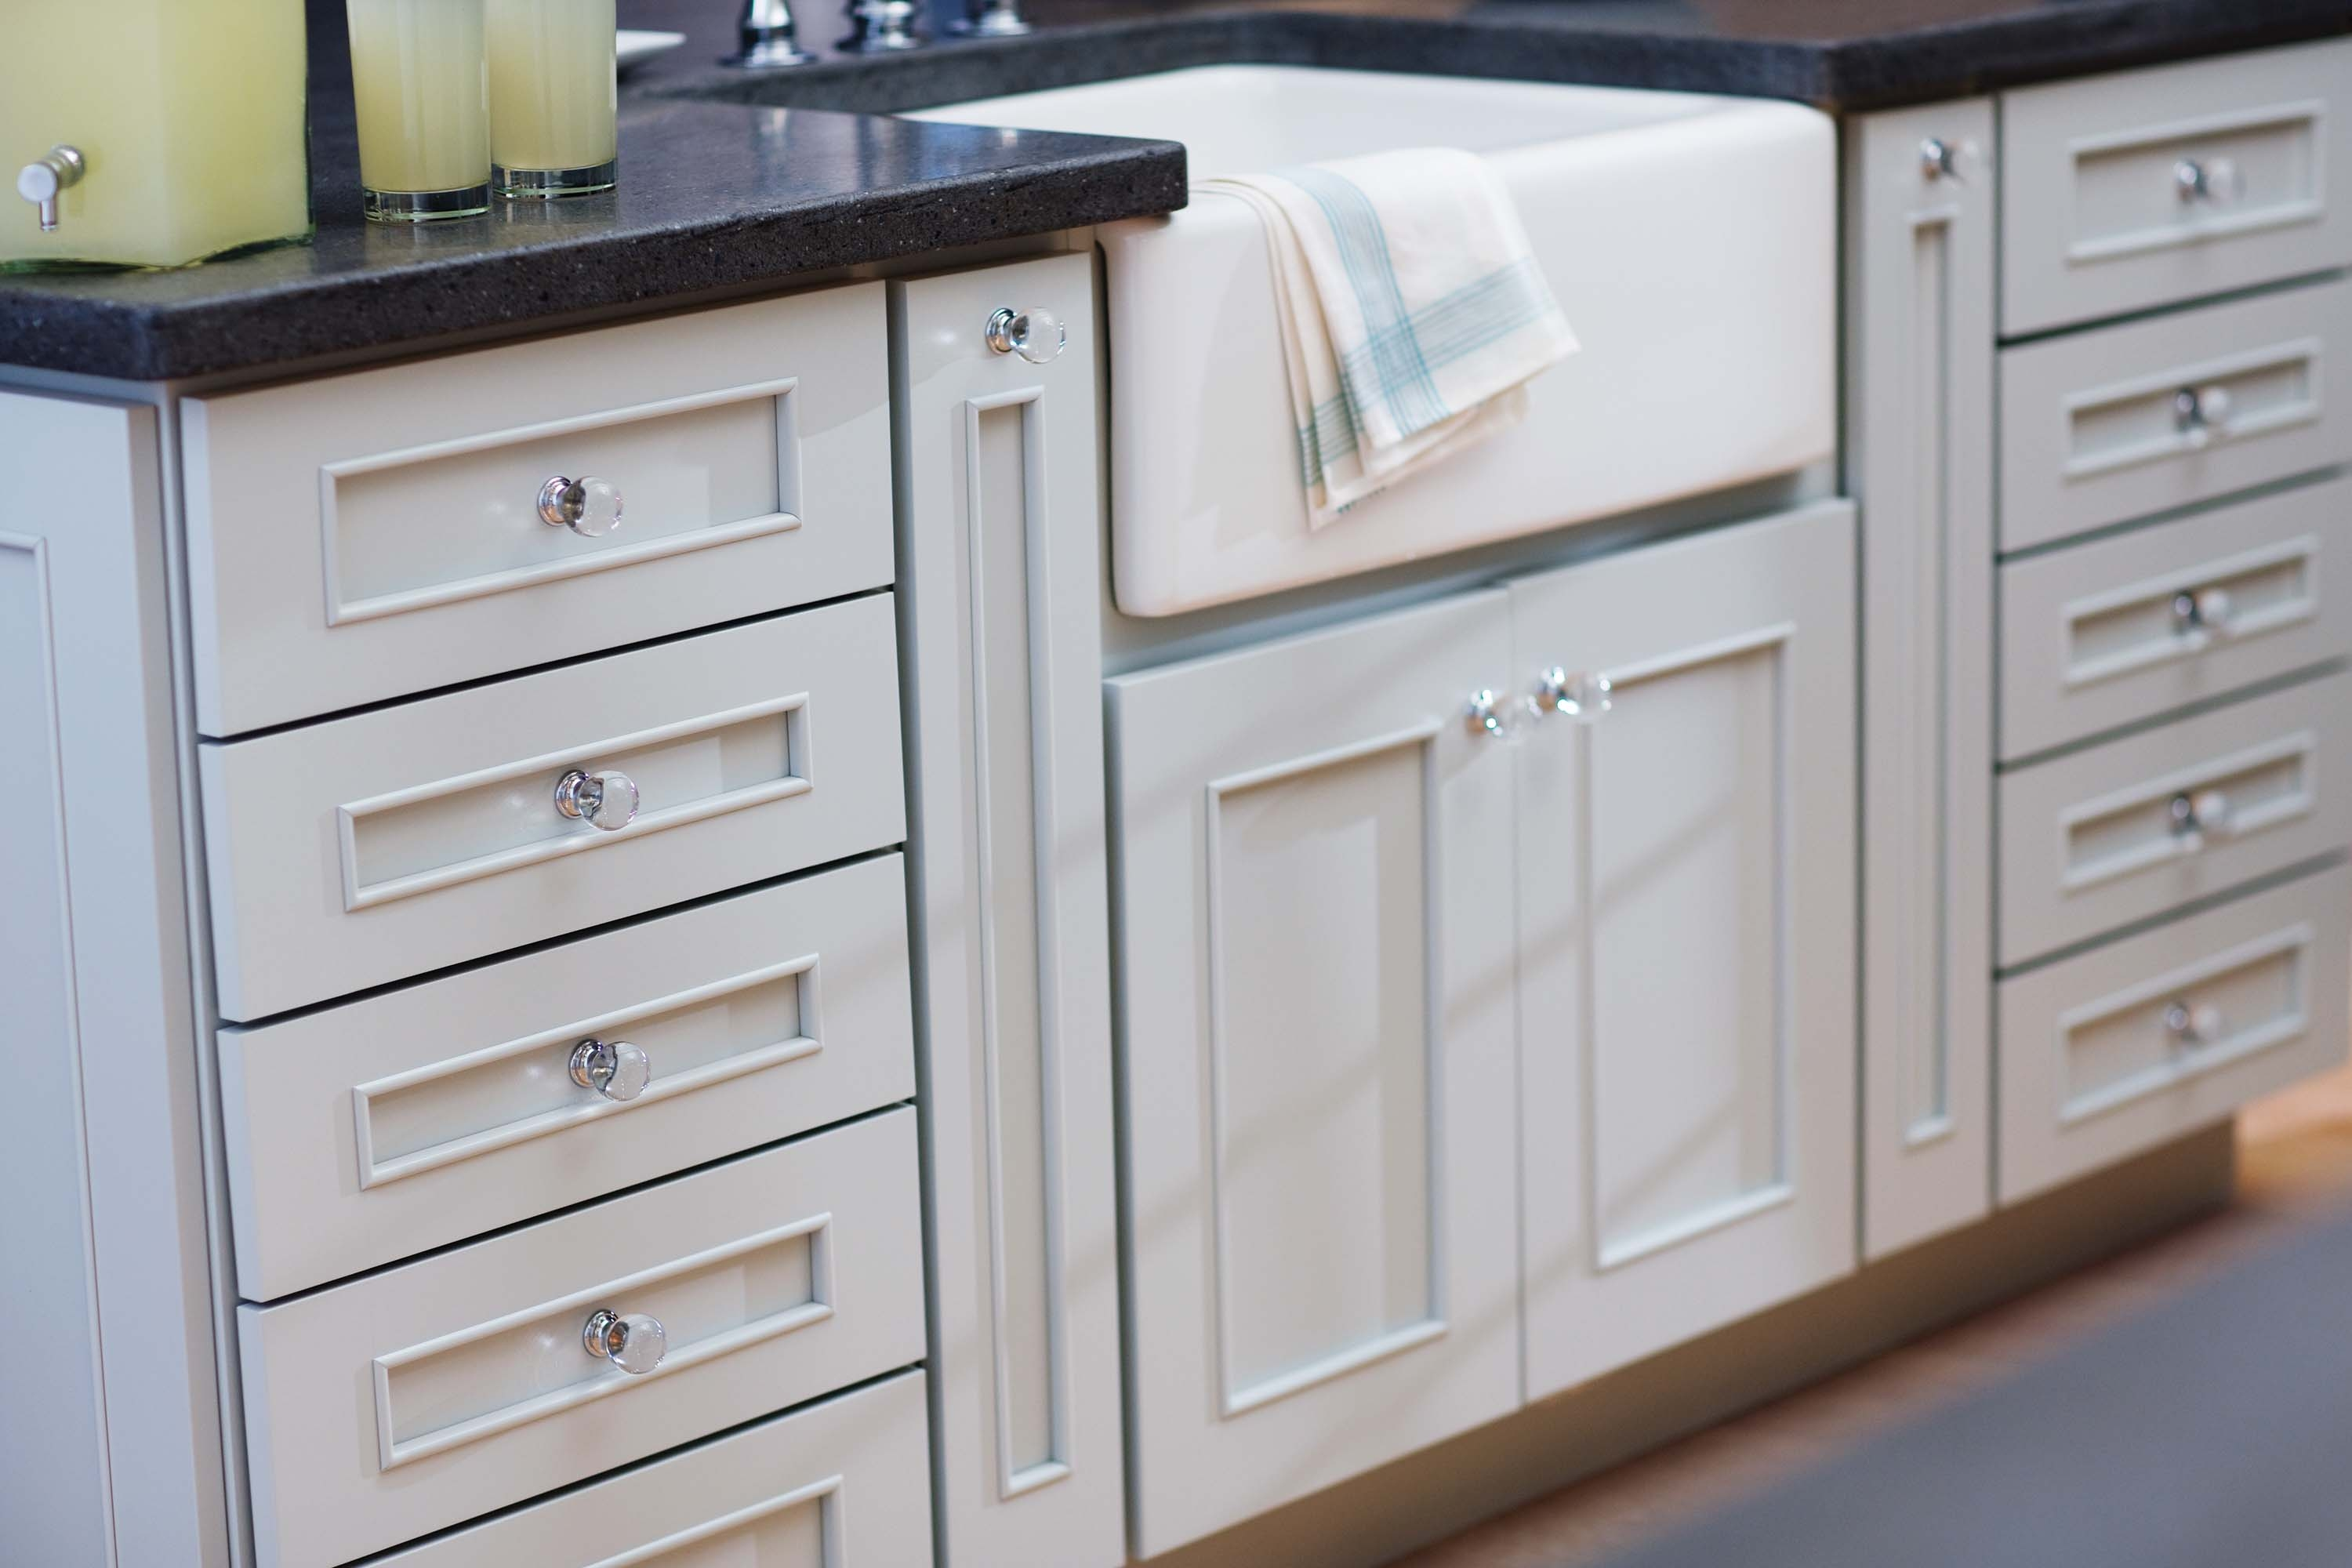 Bathroom Cabinets With Glass Knobs